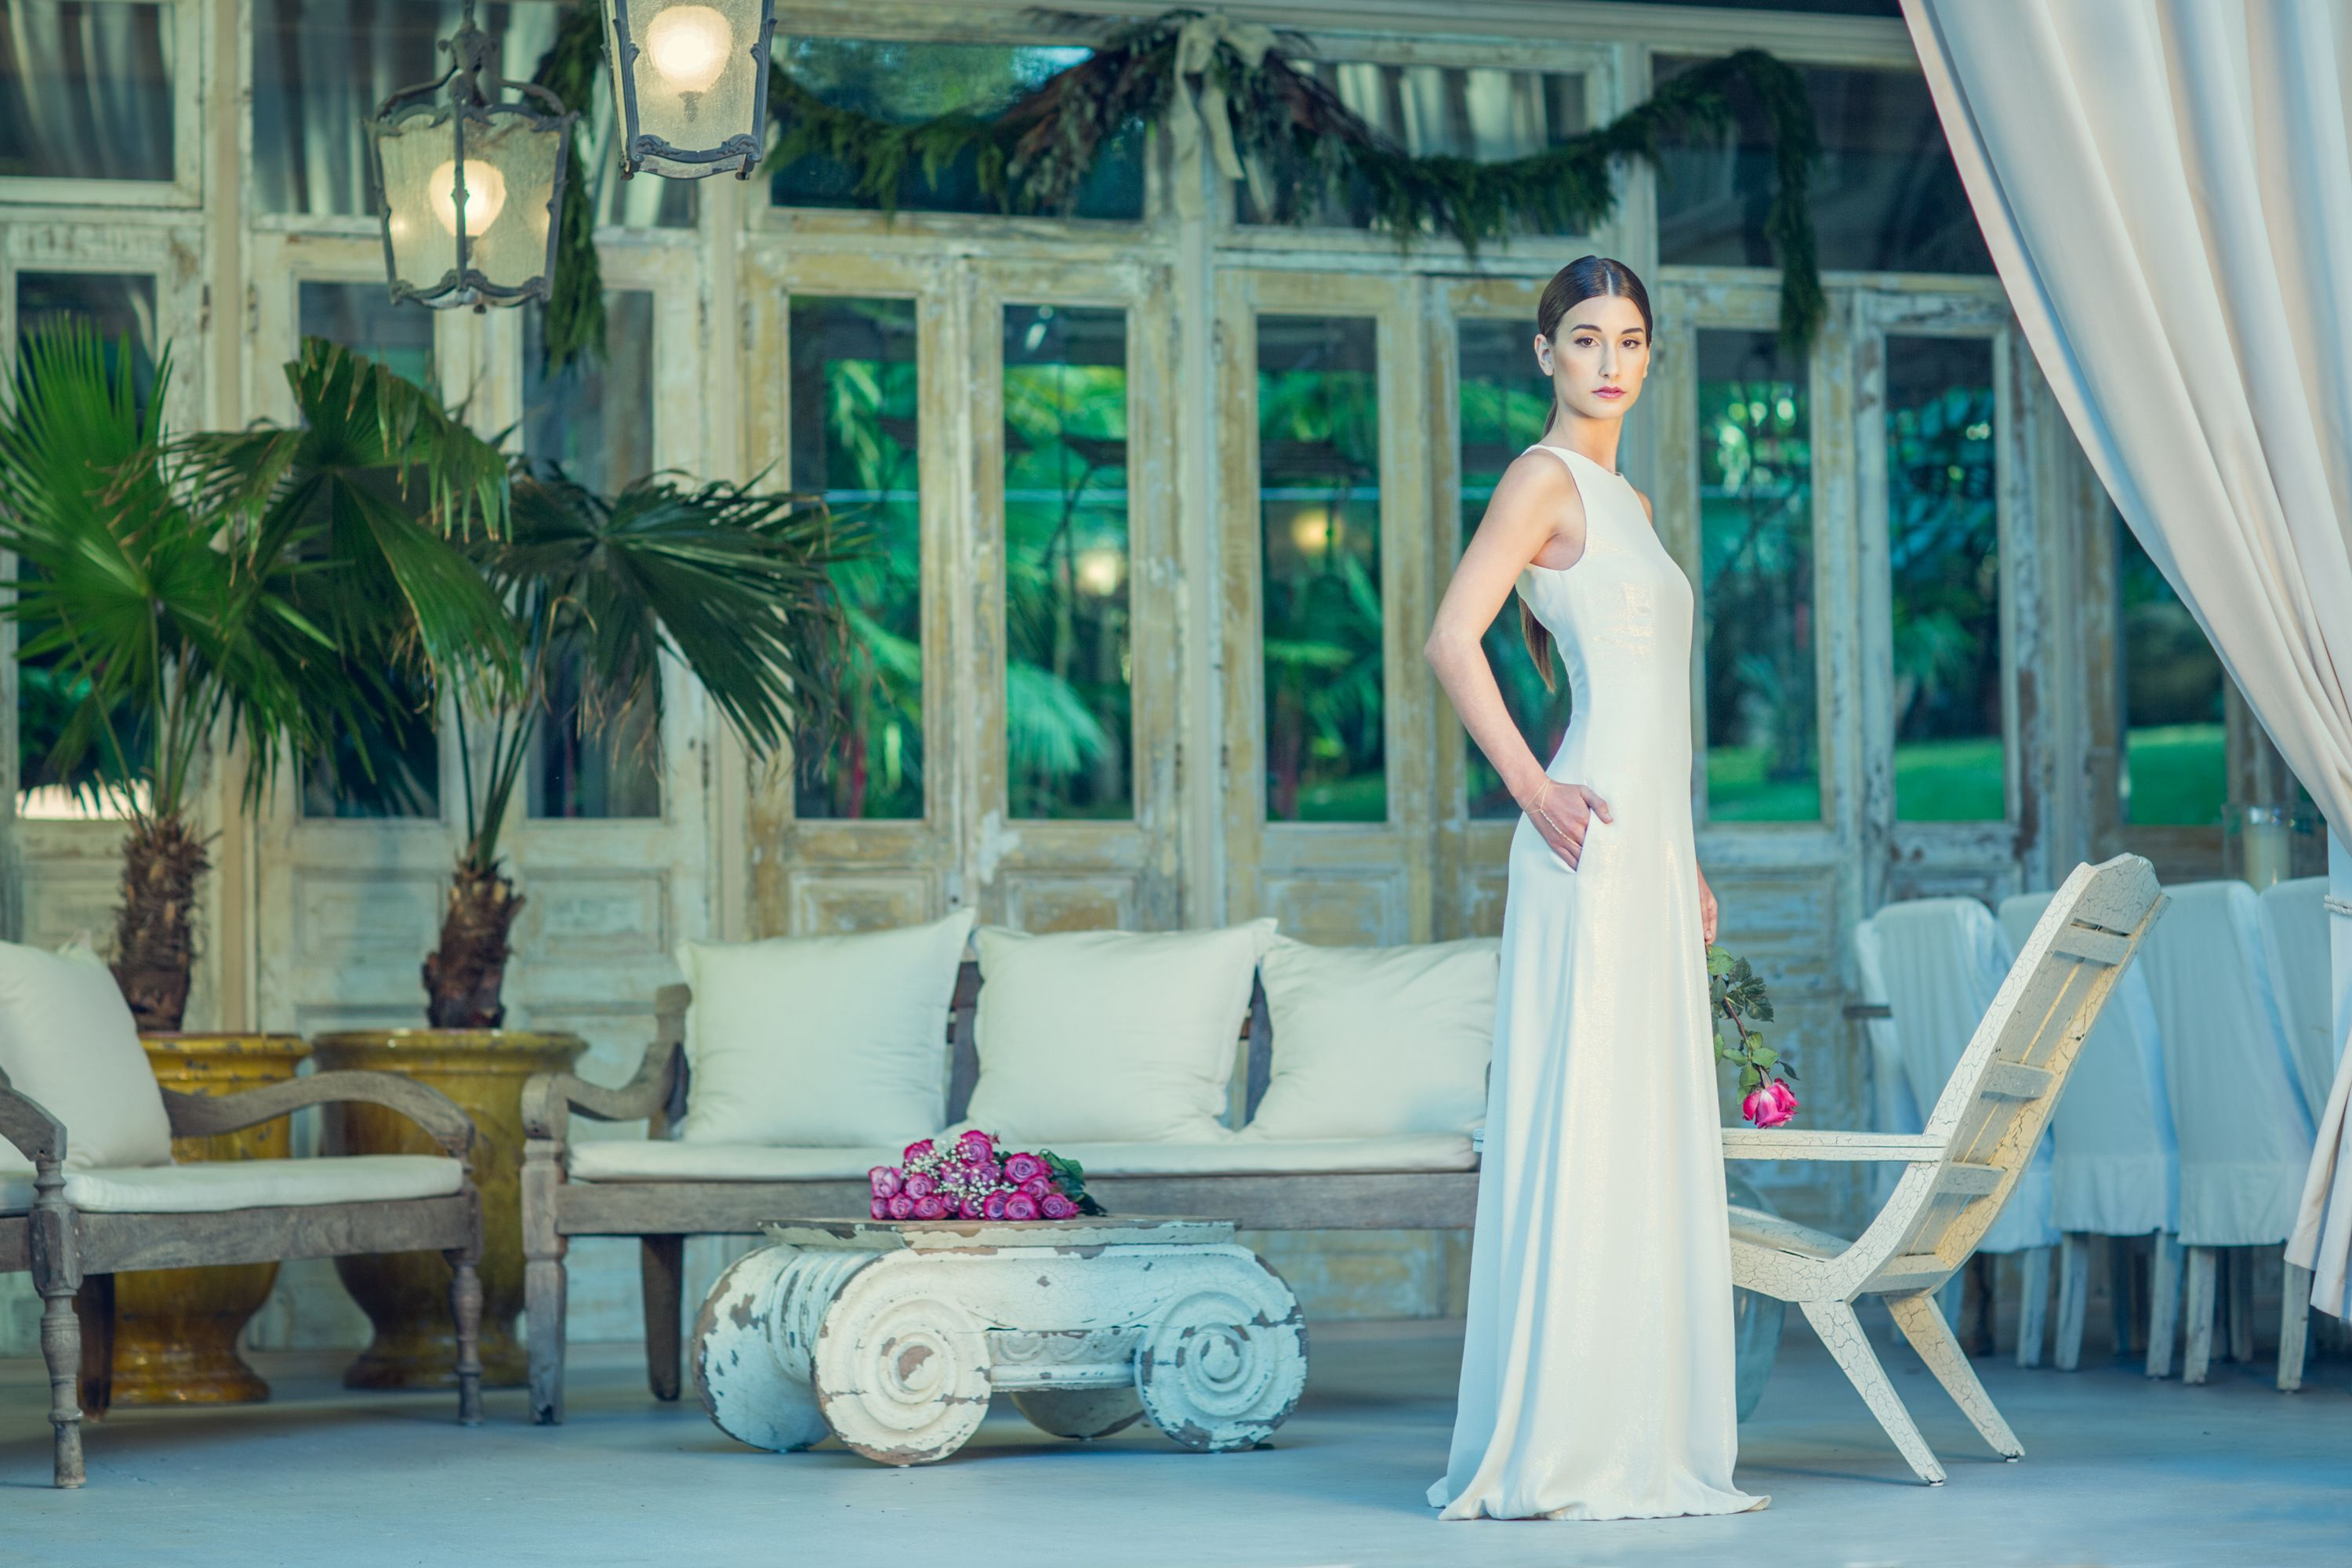 Hawaiian wedding dress  The Lydie gown    Joelle Perry   RTW at the Haiku Mill